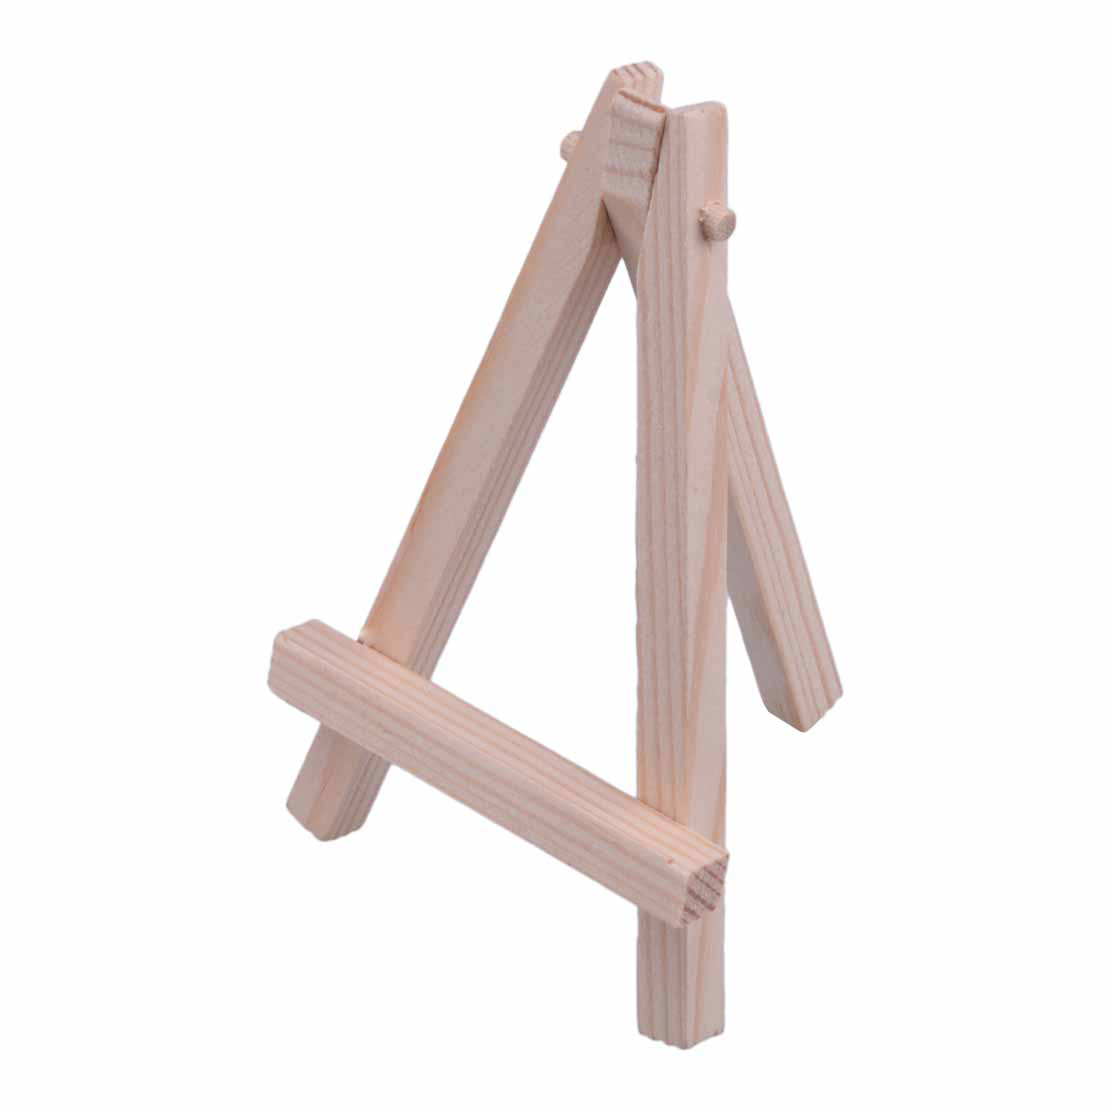 10pcs Mini Wooden Easel Triangle Table Display Artist